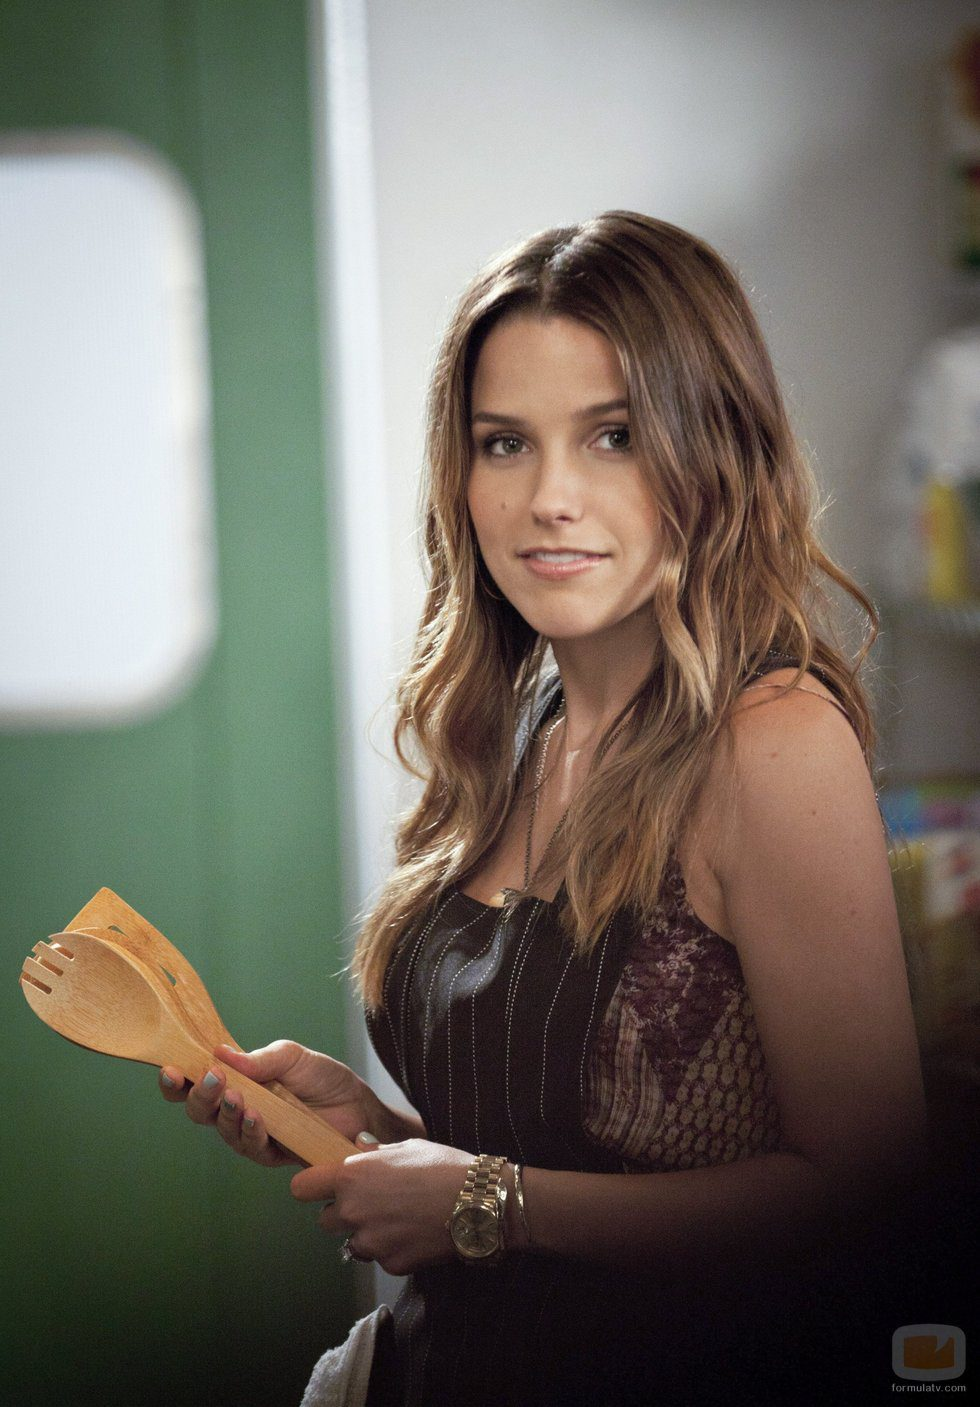 Sophia Bush como Brooke Davis en la novena temporada de 'One Tree Hill'